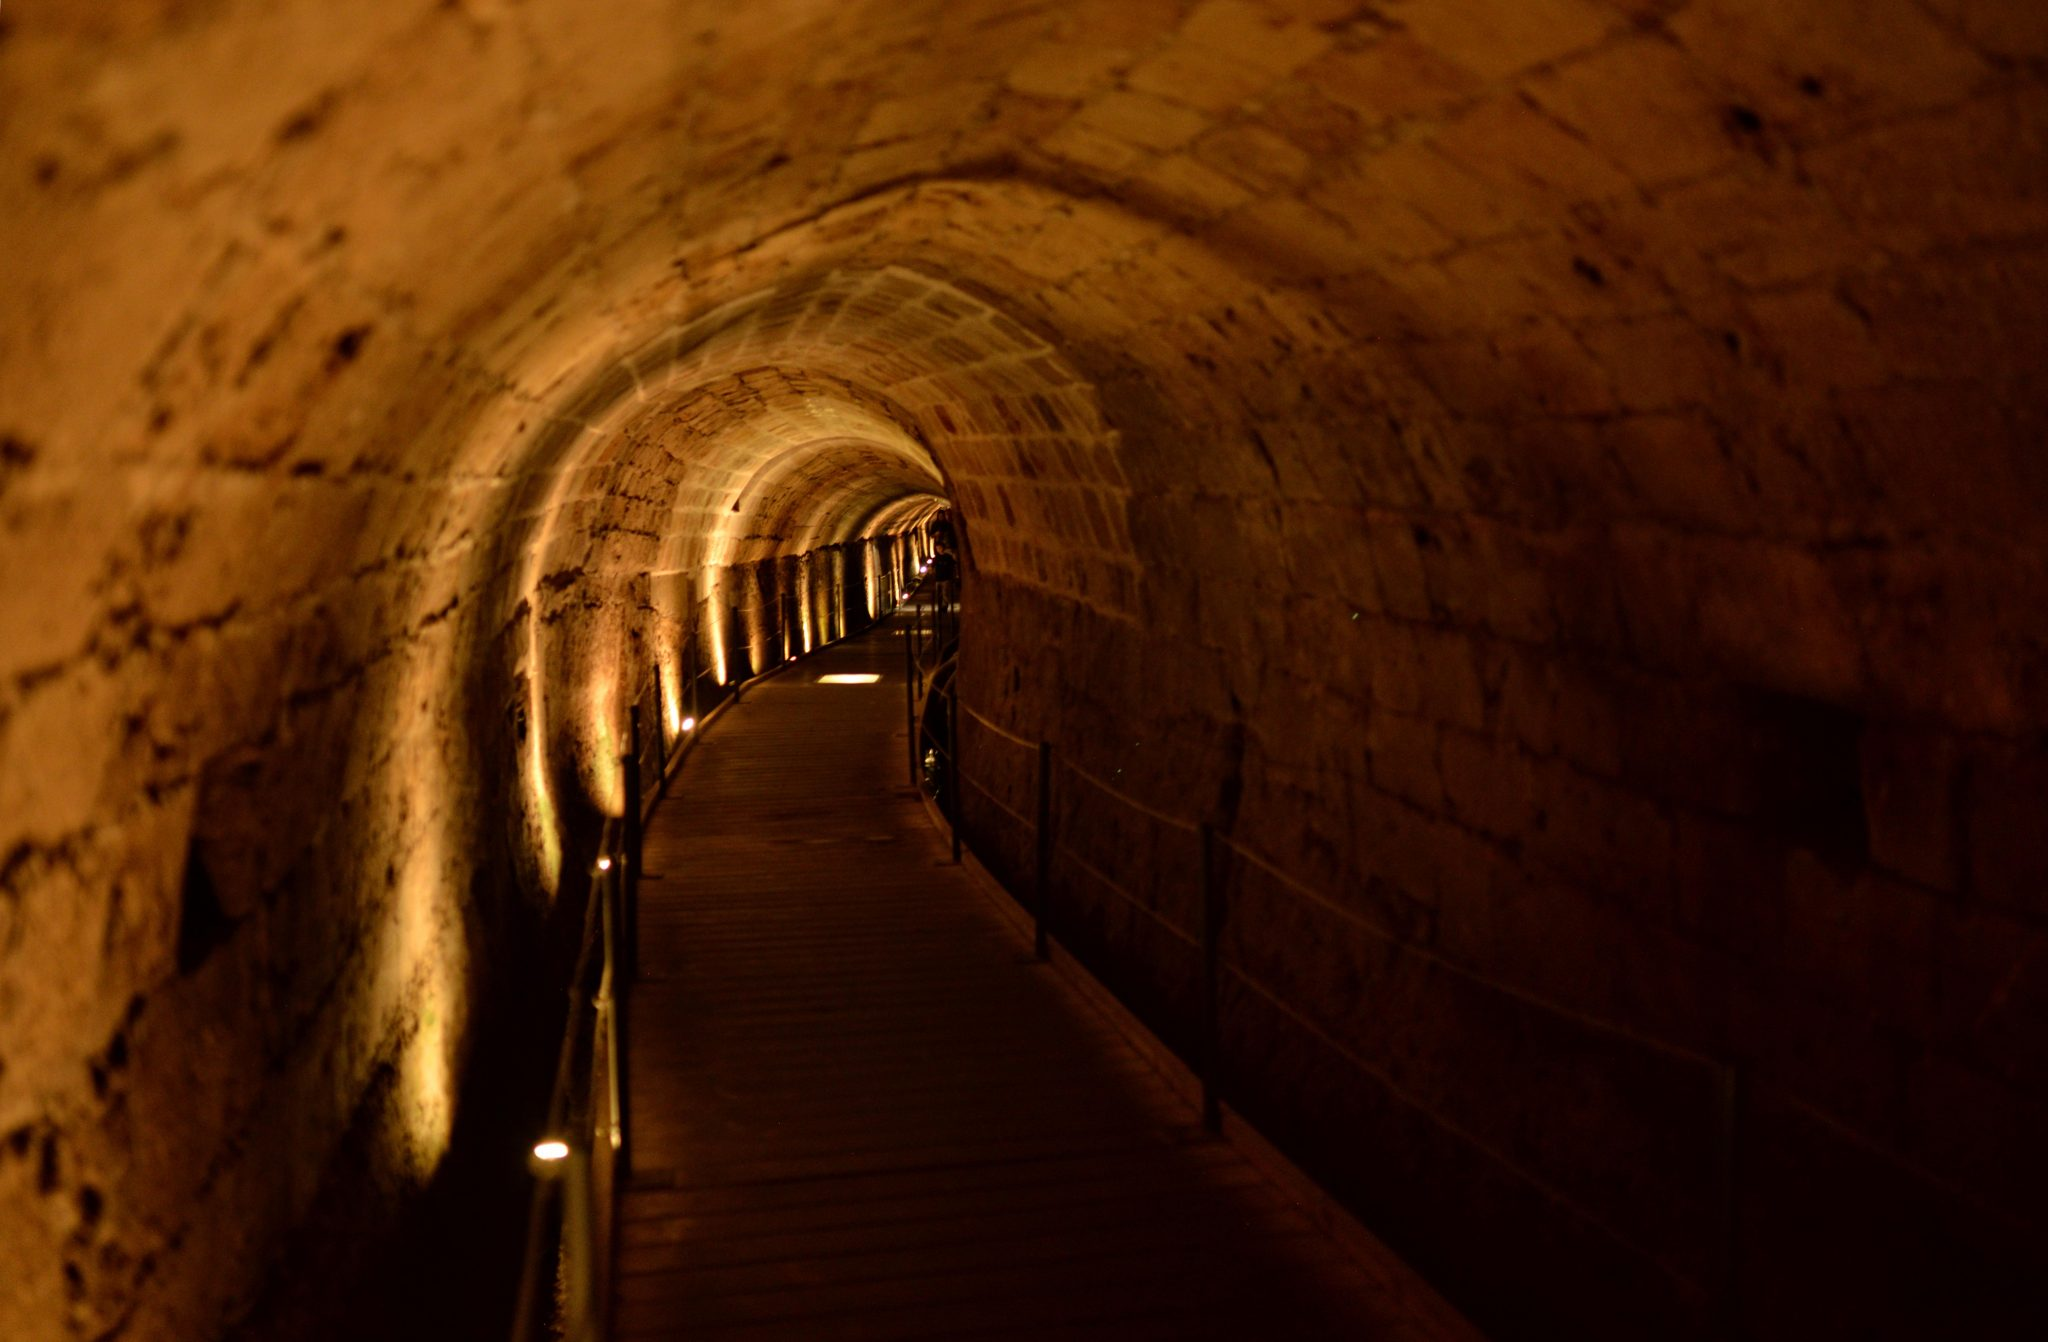 Templar Tunnel, Akko